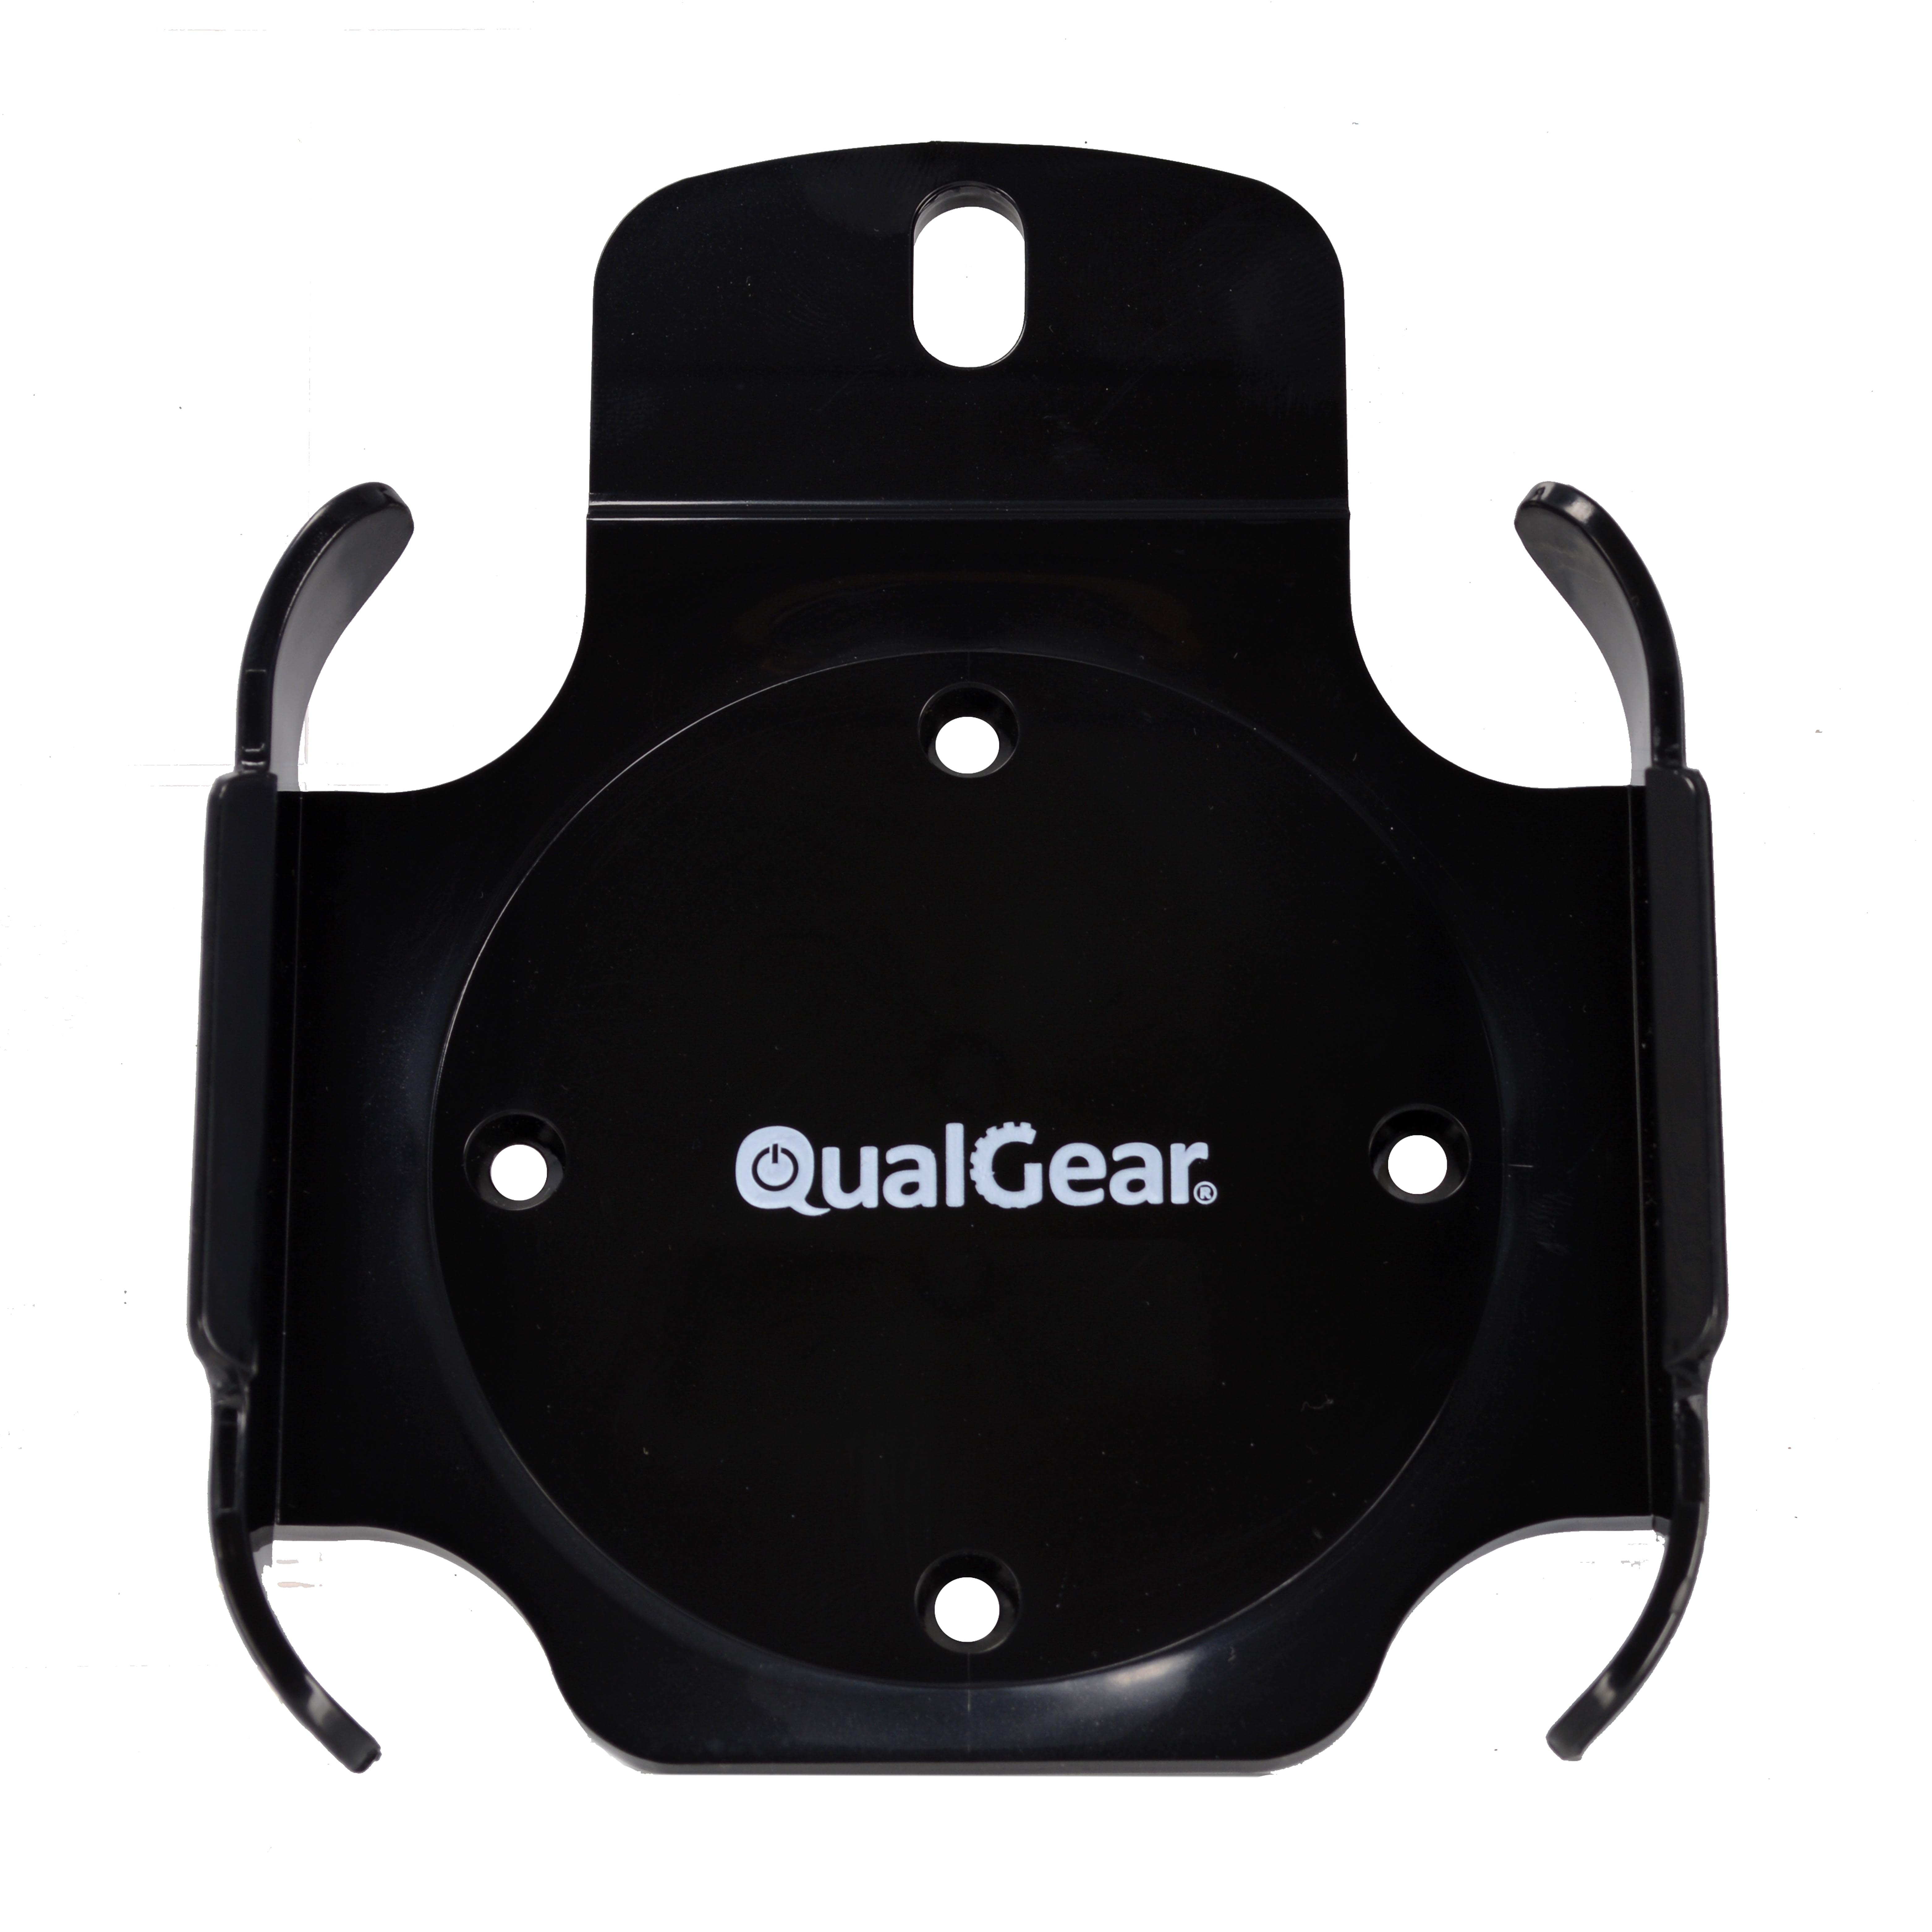 QualGear QG-AM-017 Mount for Apple TV/AirPort Express Base Station (For 2nd & 3rd Generation Apple TVs)